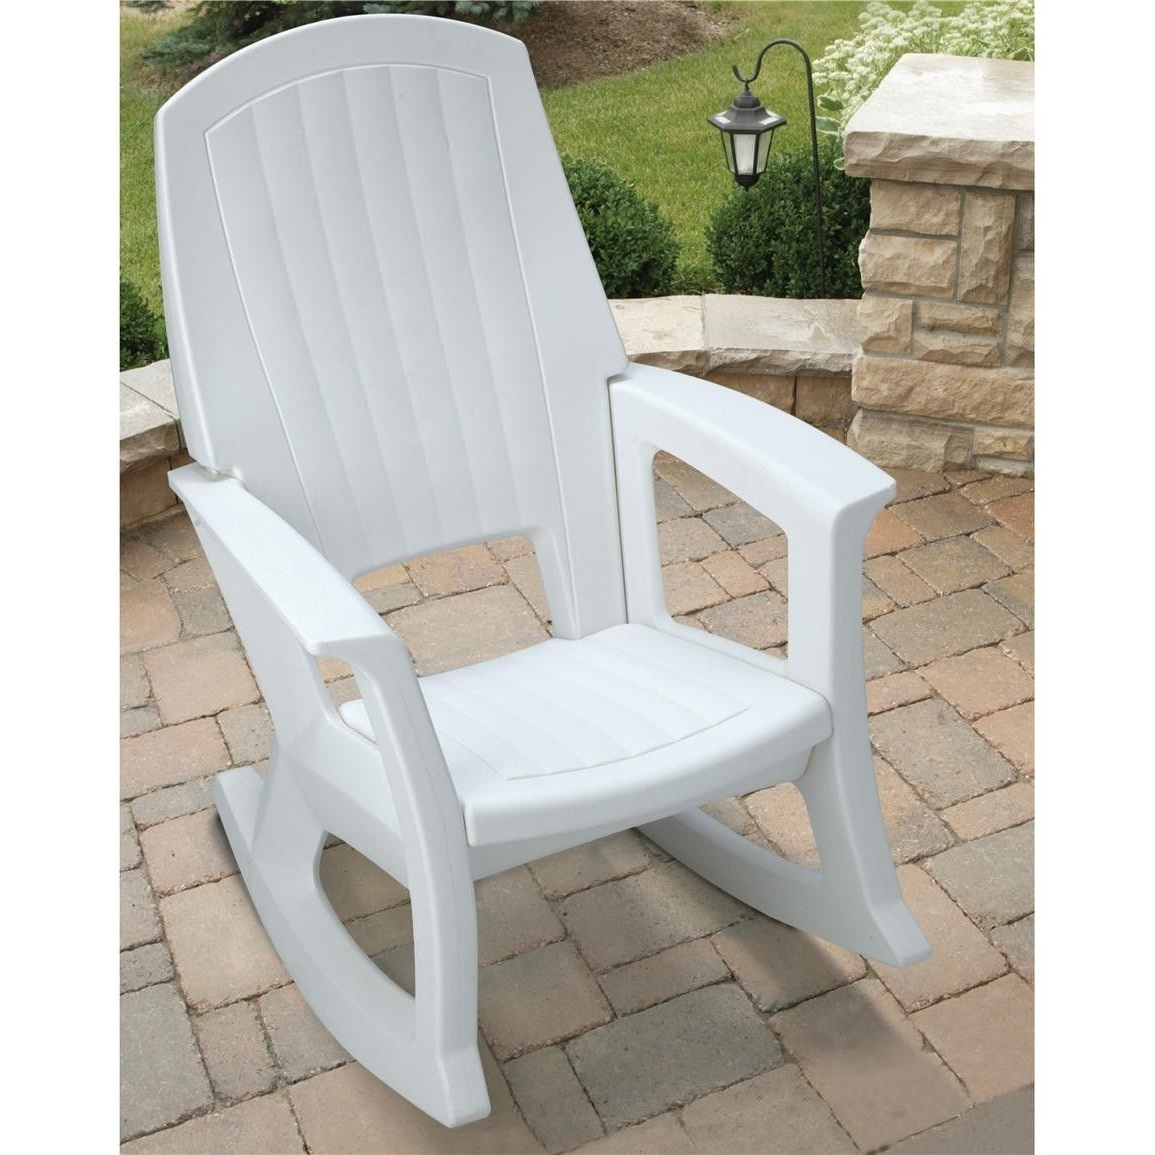 Famous Small Patio Rocking Chairs Within Semco Plastics White Resin Outdoor Patio Rocking Chair Semw : Rural (View 6 of 20)